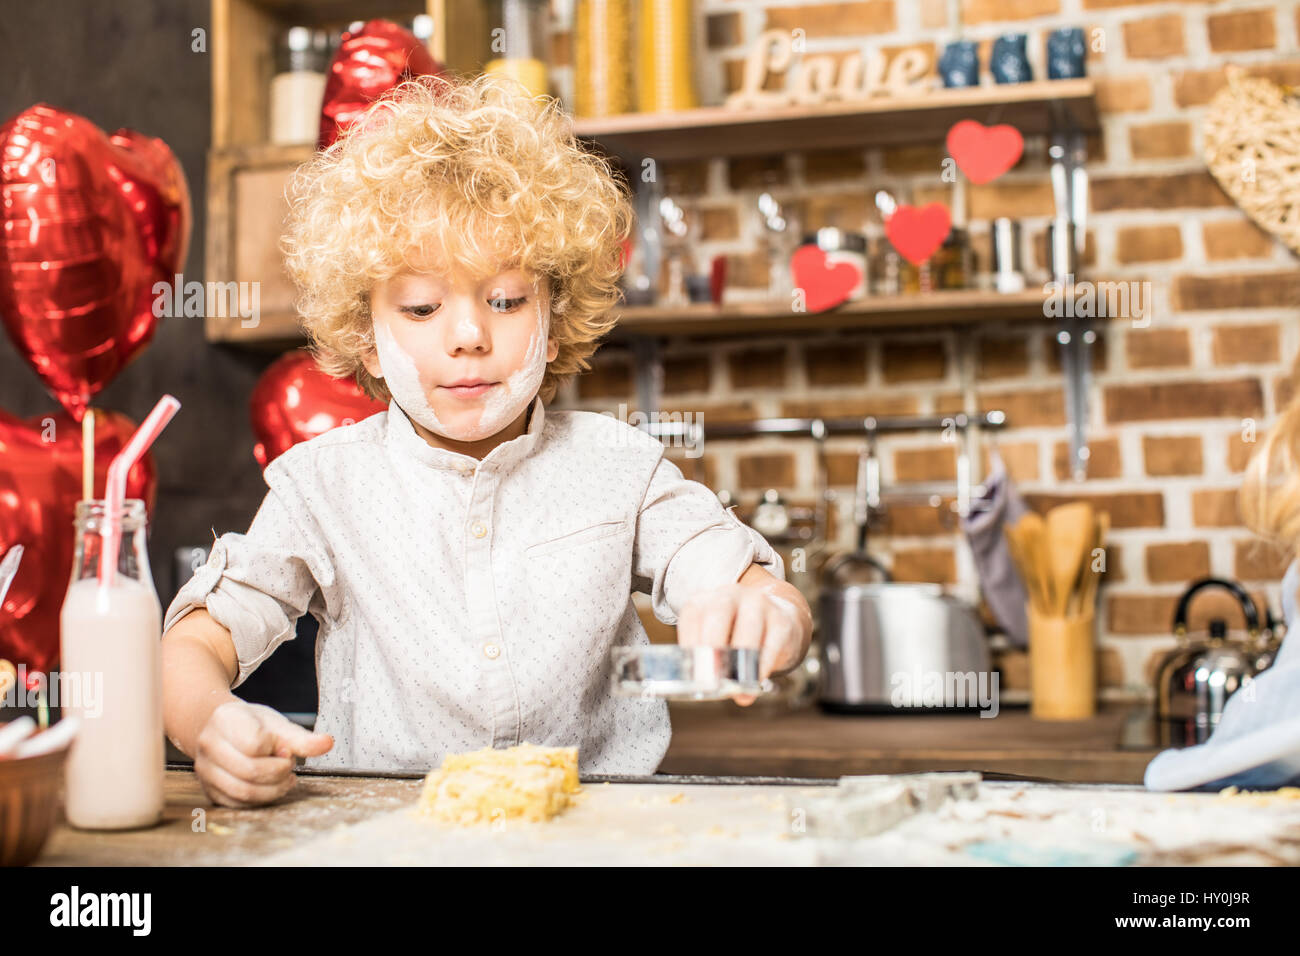 Portrait of little boy with flour-streaked face making cookies - Stock Image